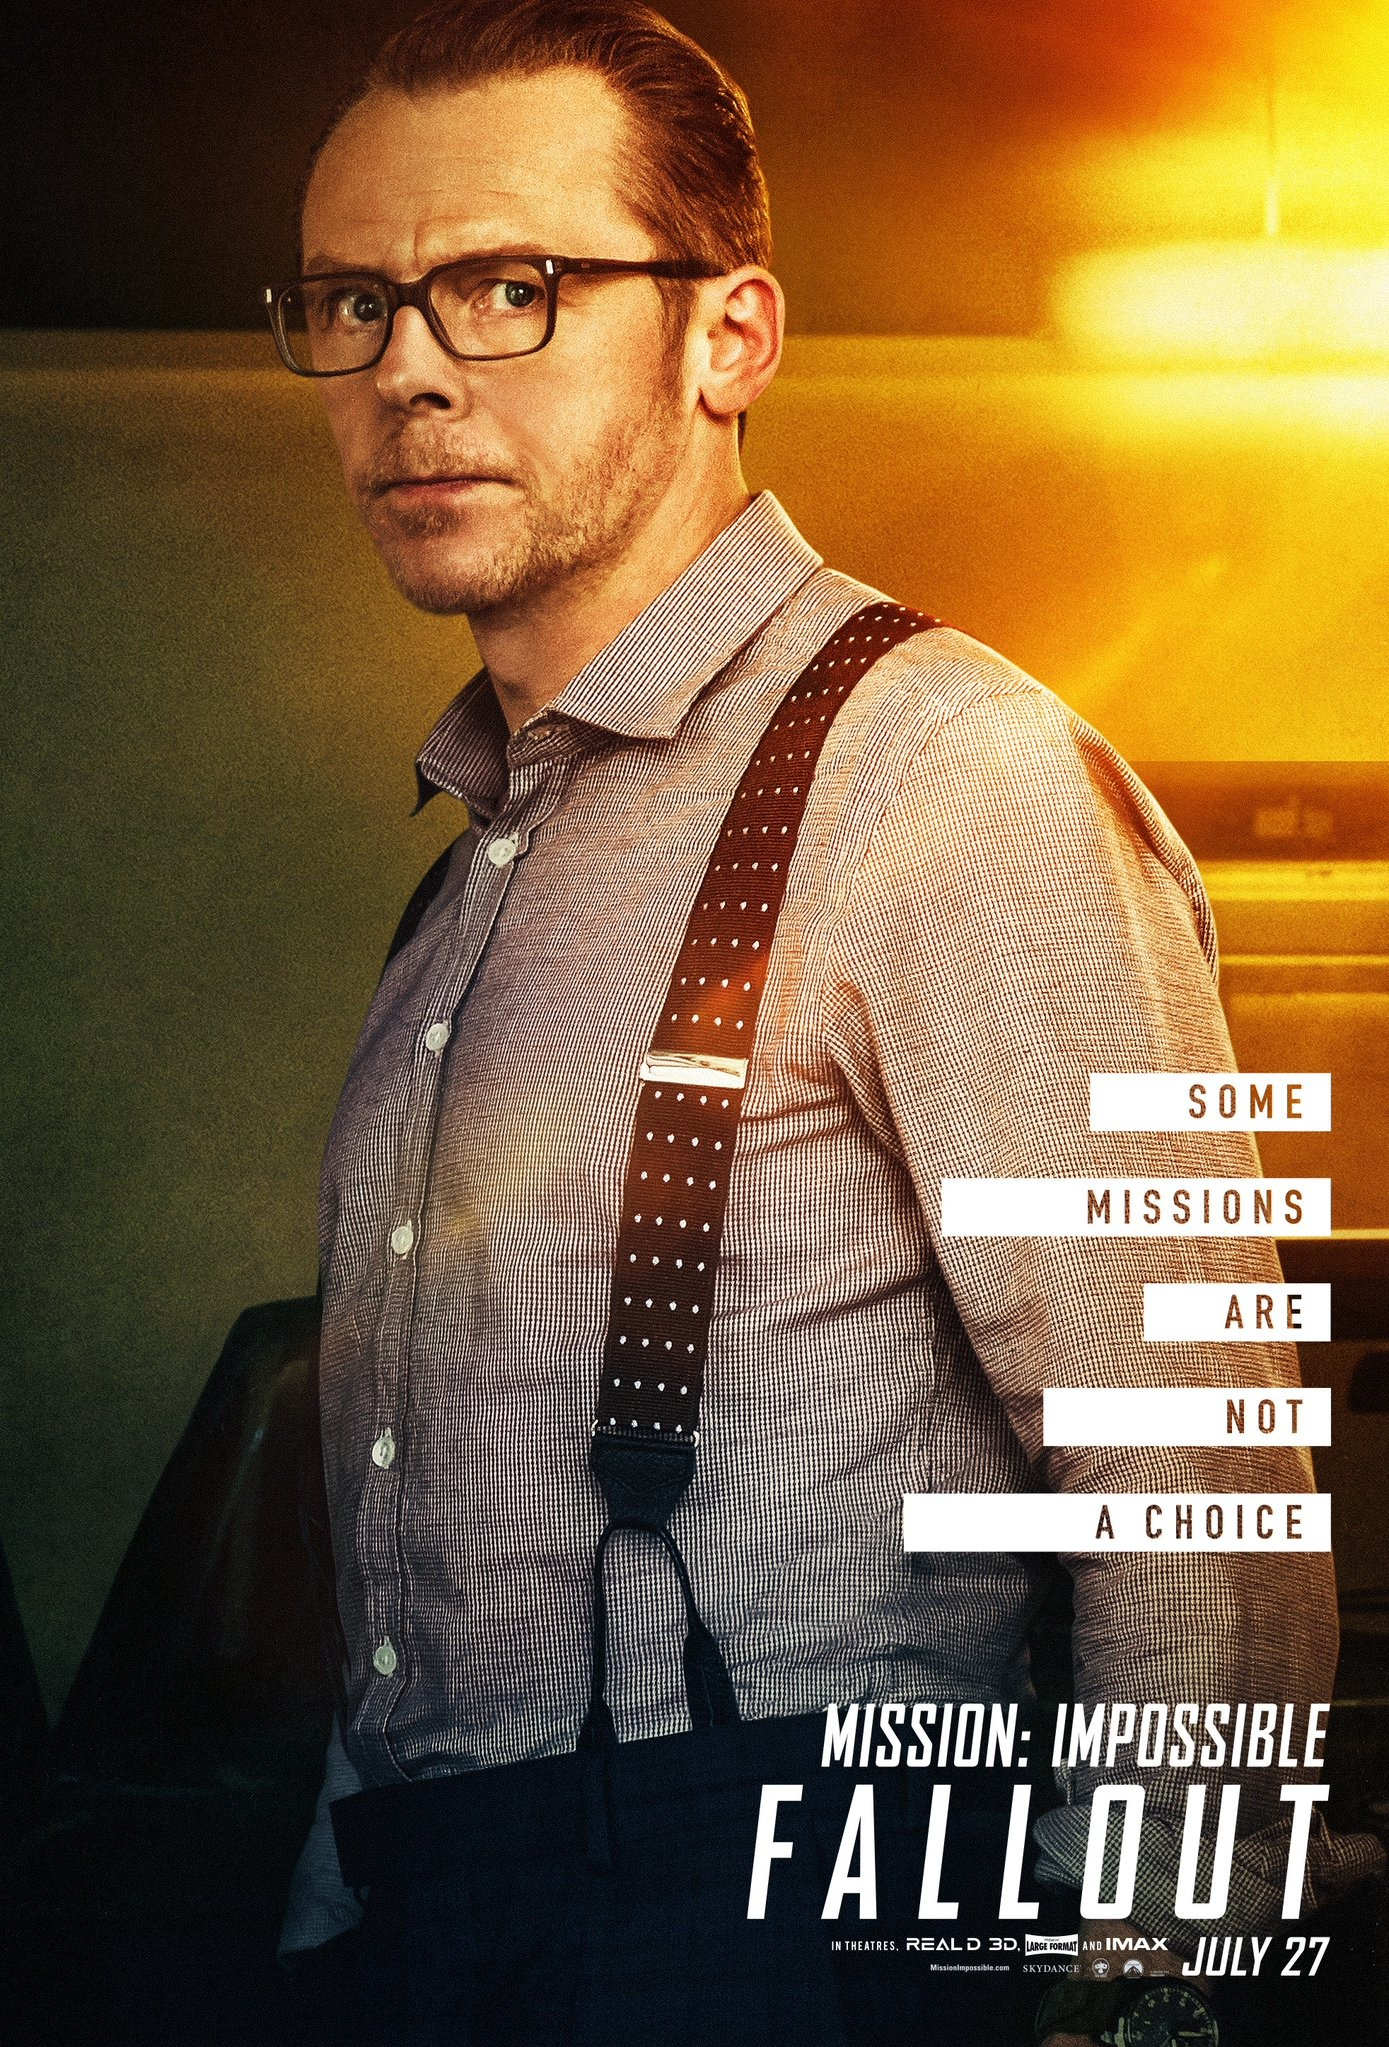 Mission Impossible Fallout poster 7.jpg